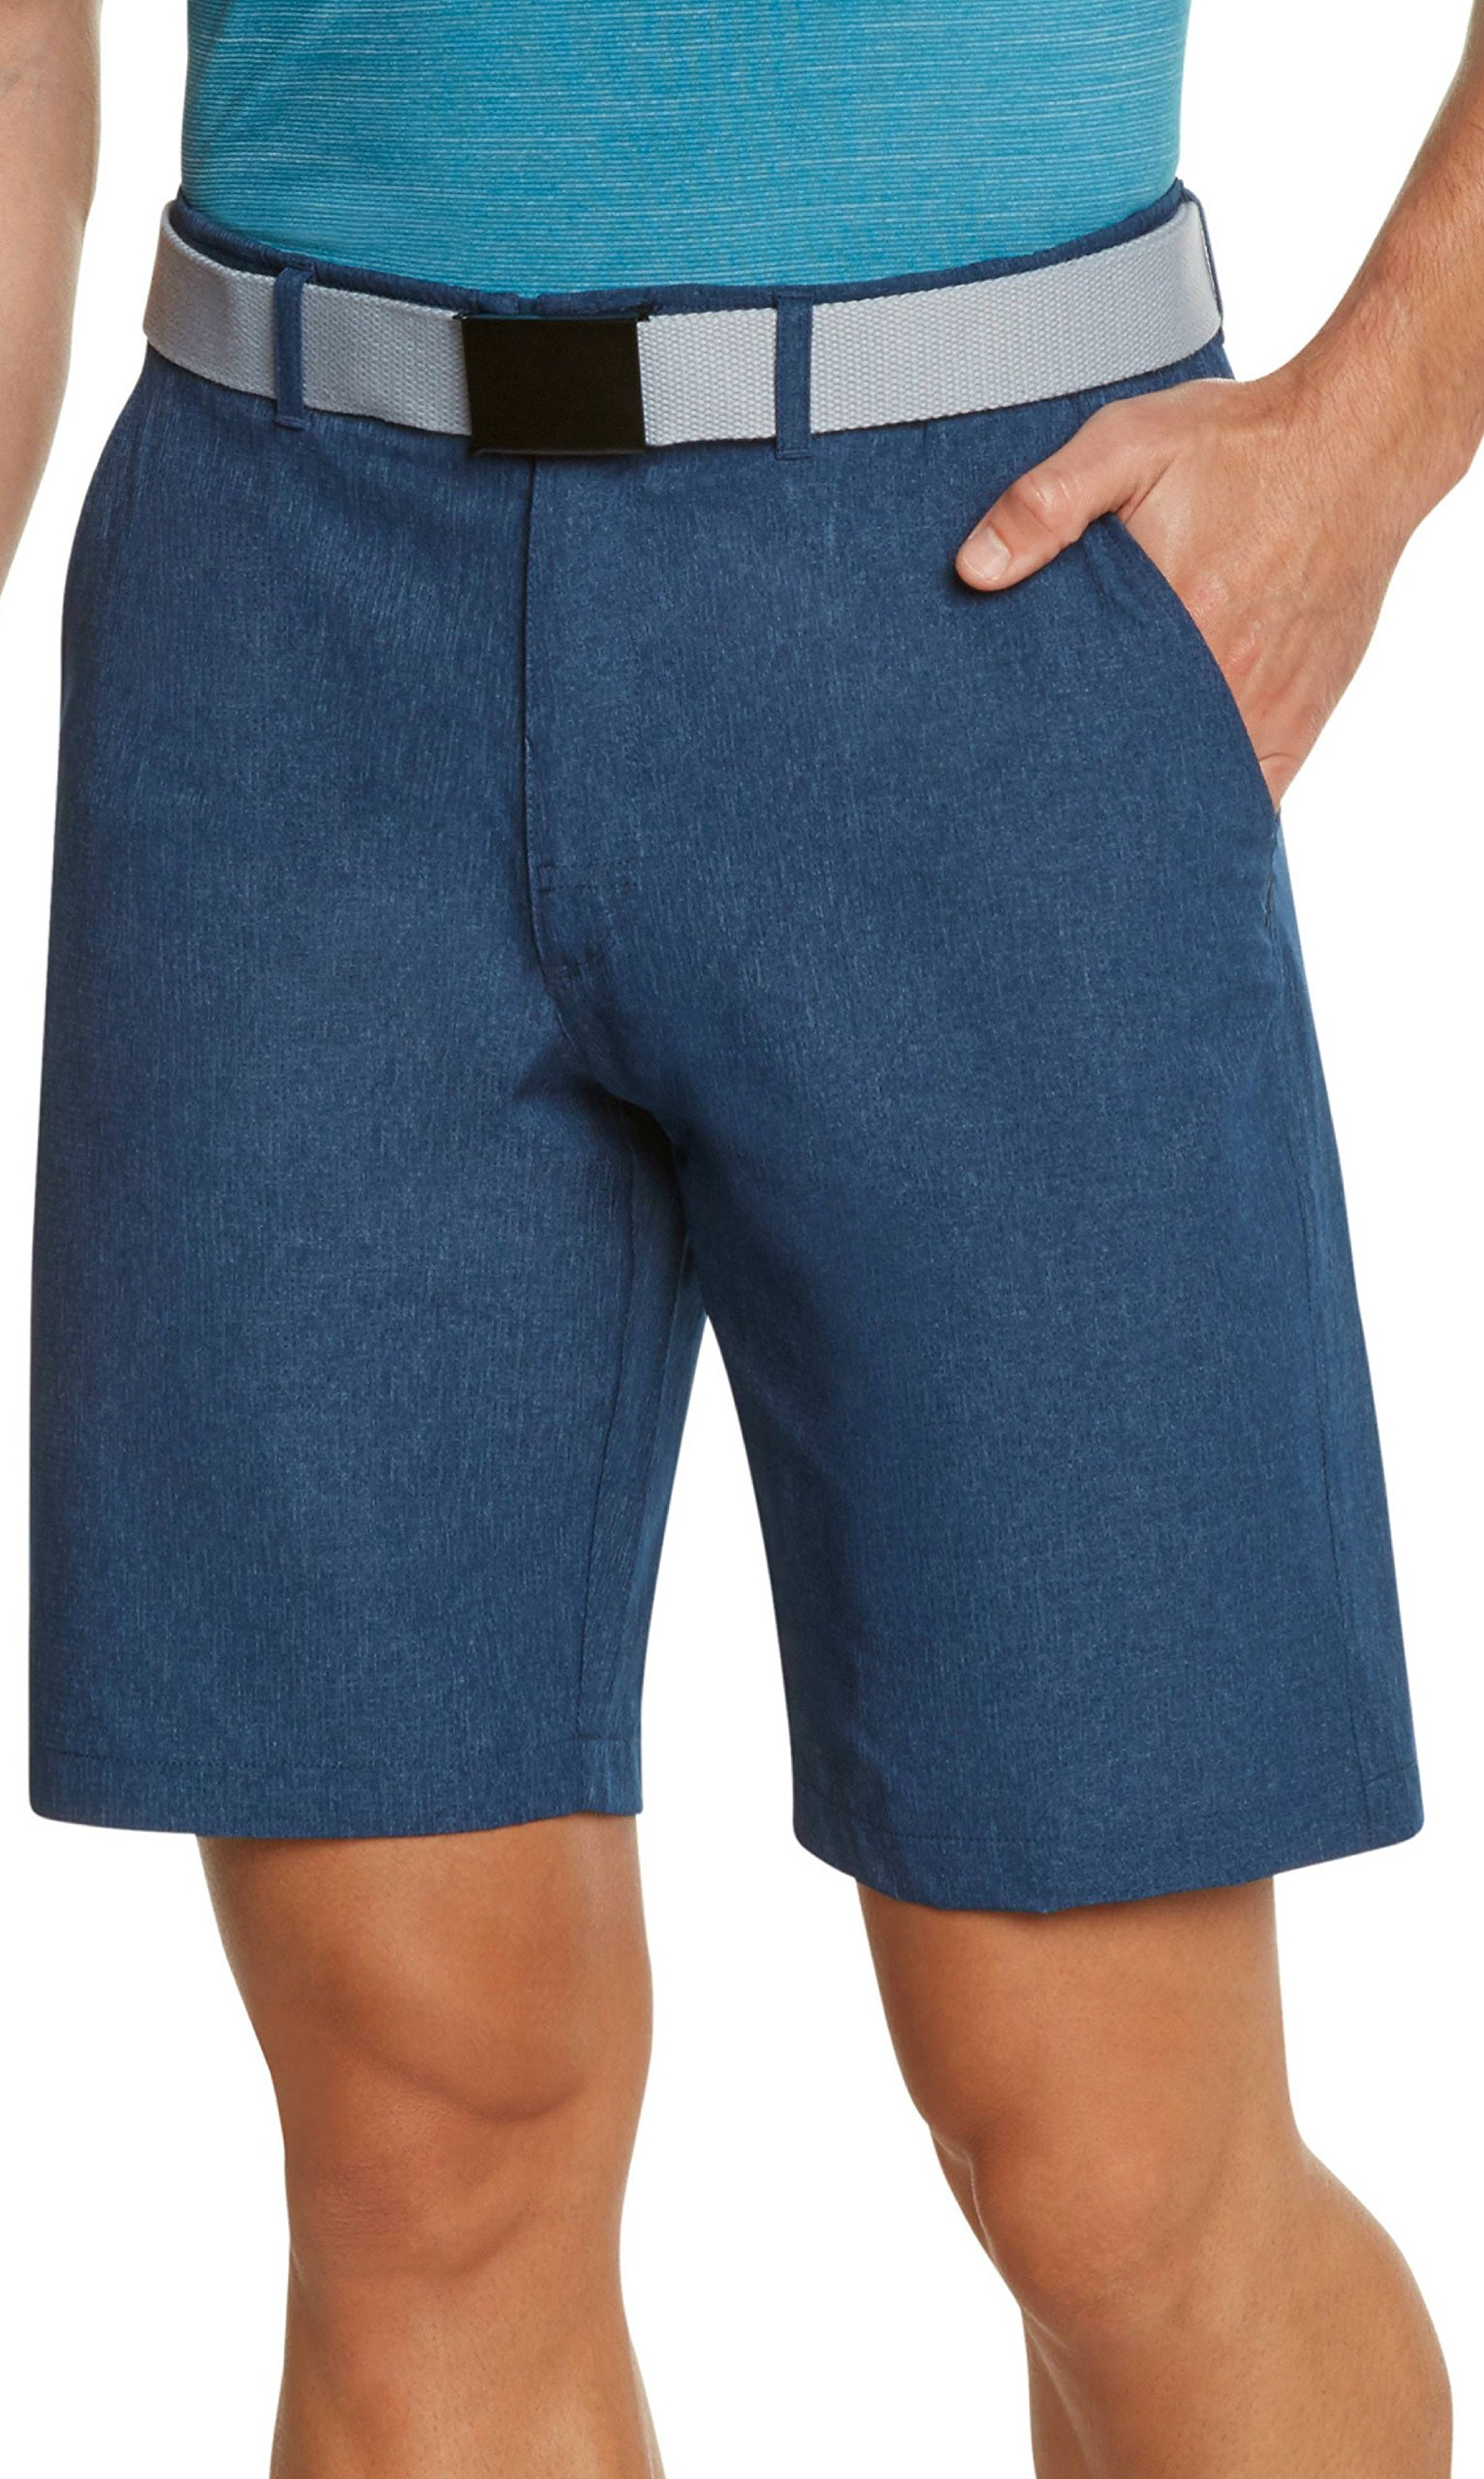 Jolt Gear Dry Fit Golf Shorts for Men – Casual Mens Shorts Moisture Wicking - Men's Chino Shorts with Elastic Waistband by Jolt Gear (Image #9)